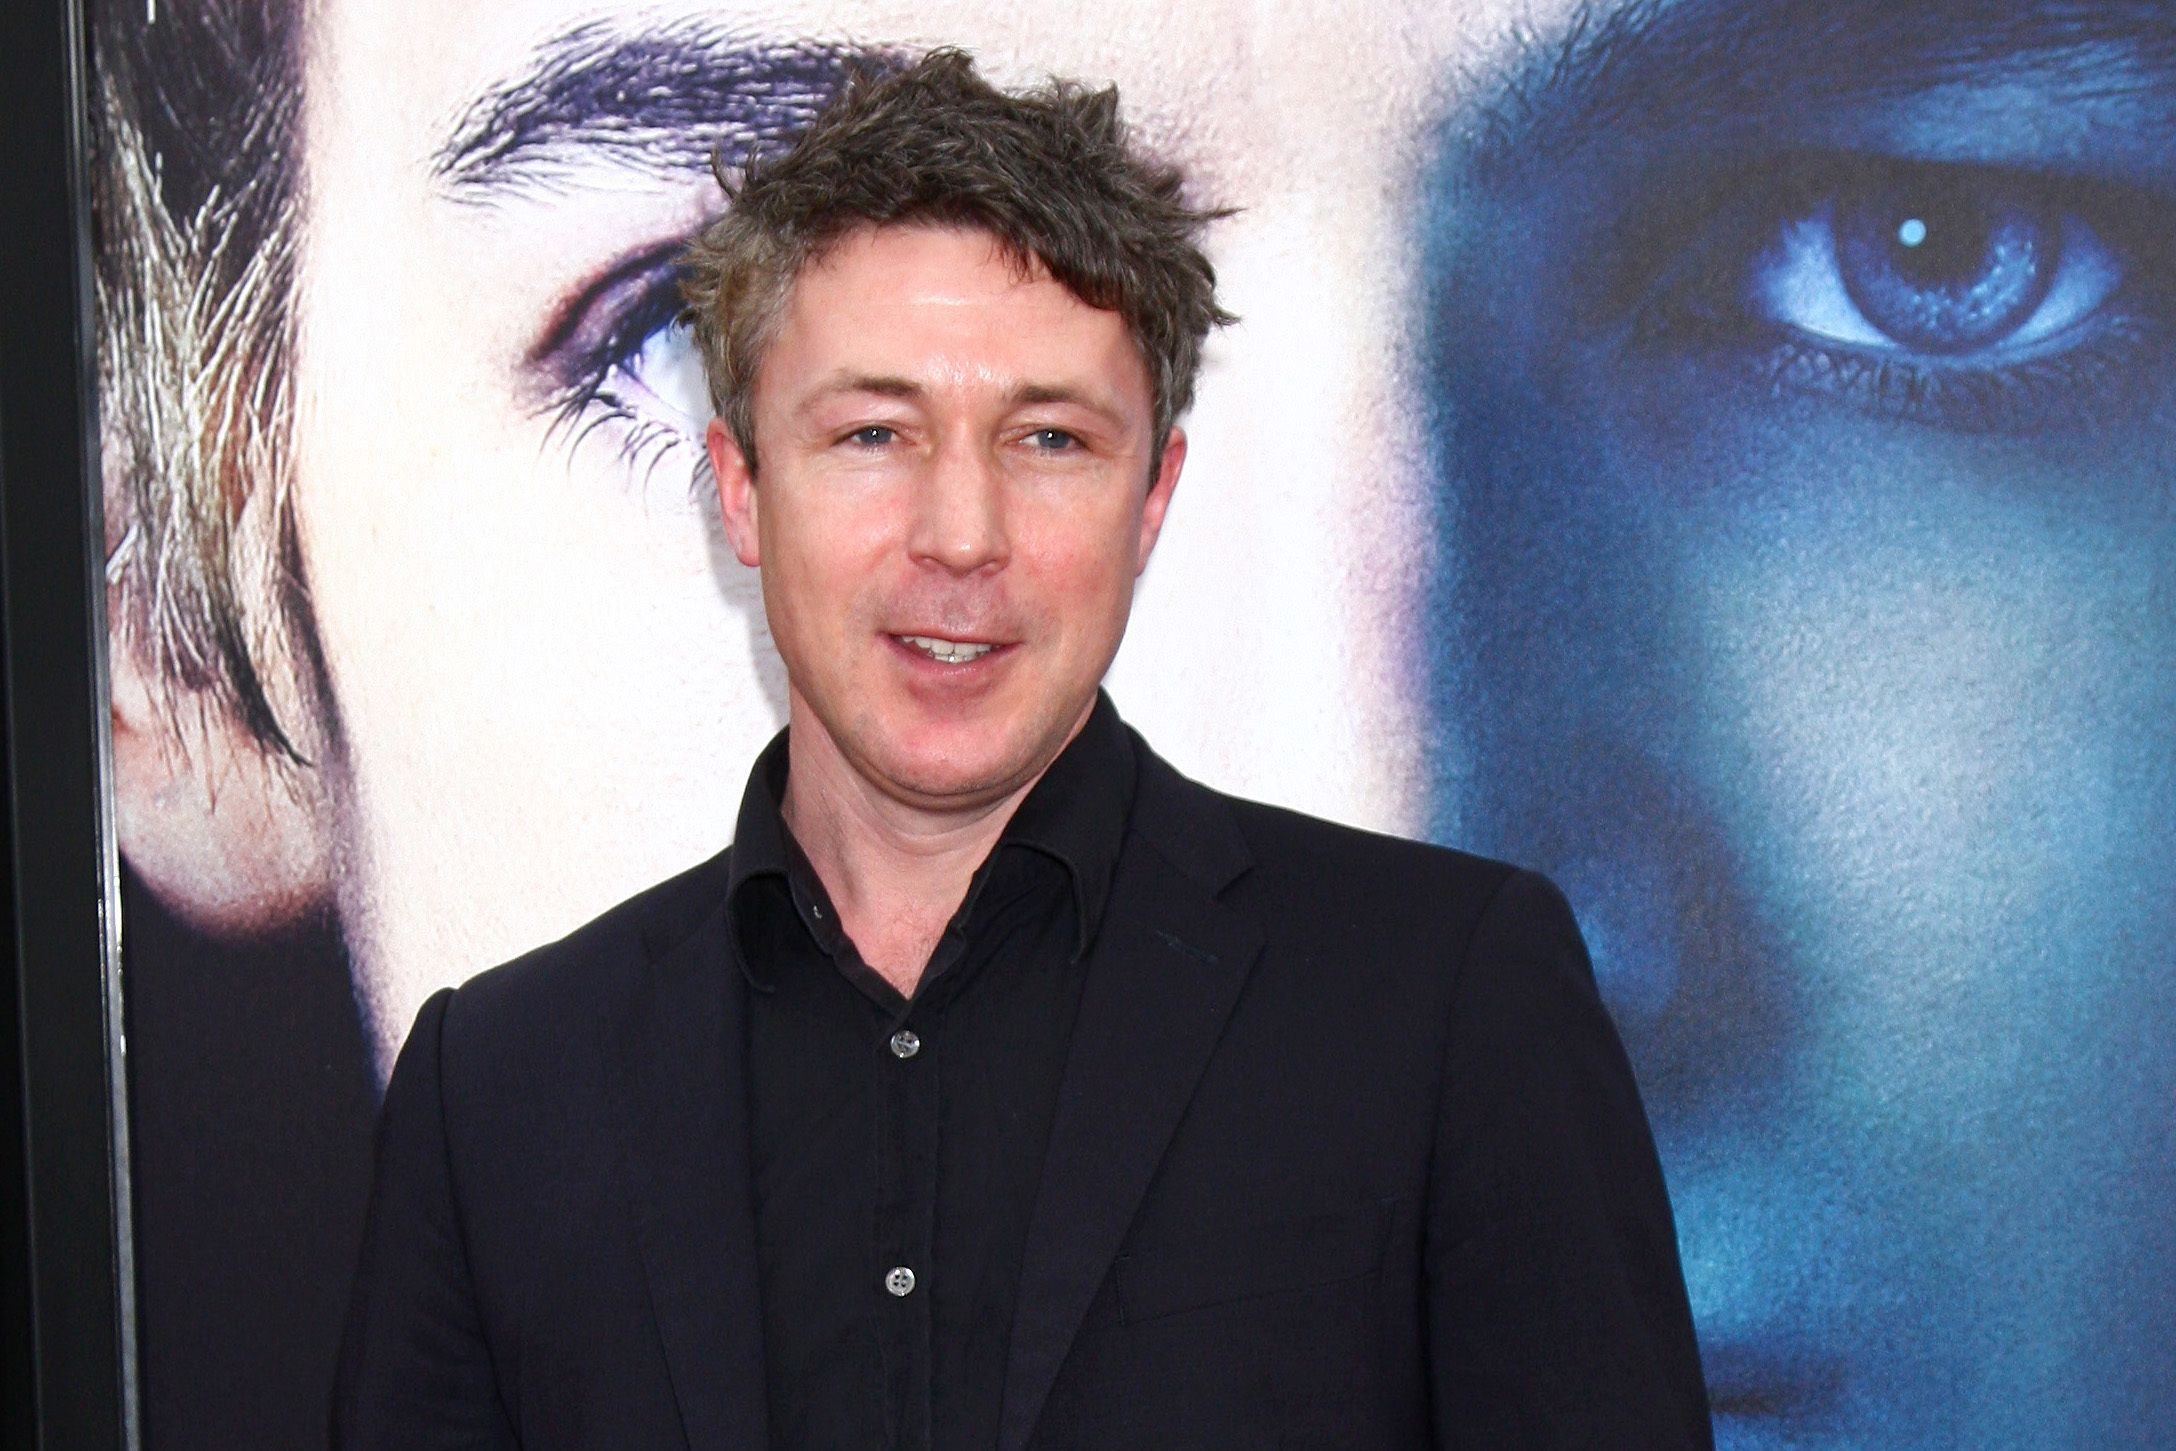 Game of Thrones' Aidan Gillen doesn't think the show will have a happy ending